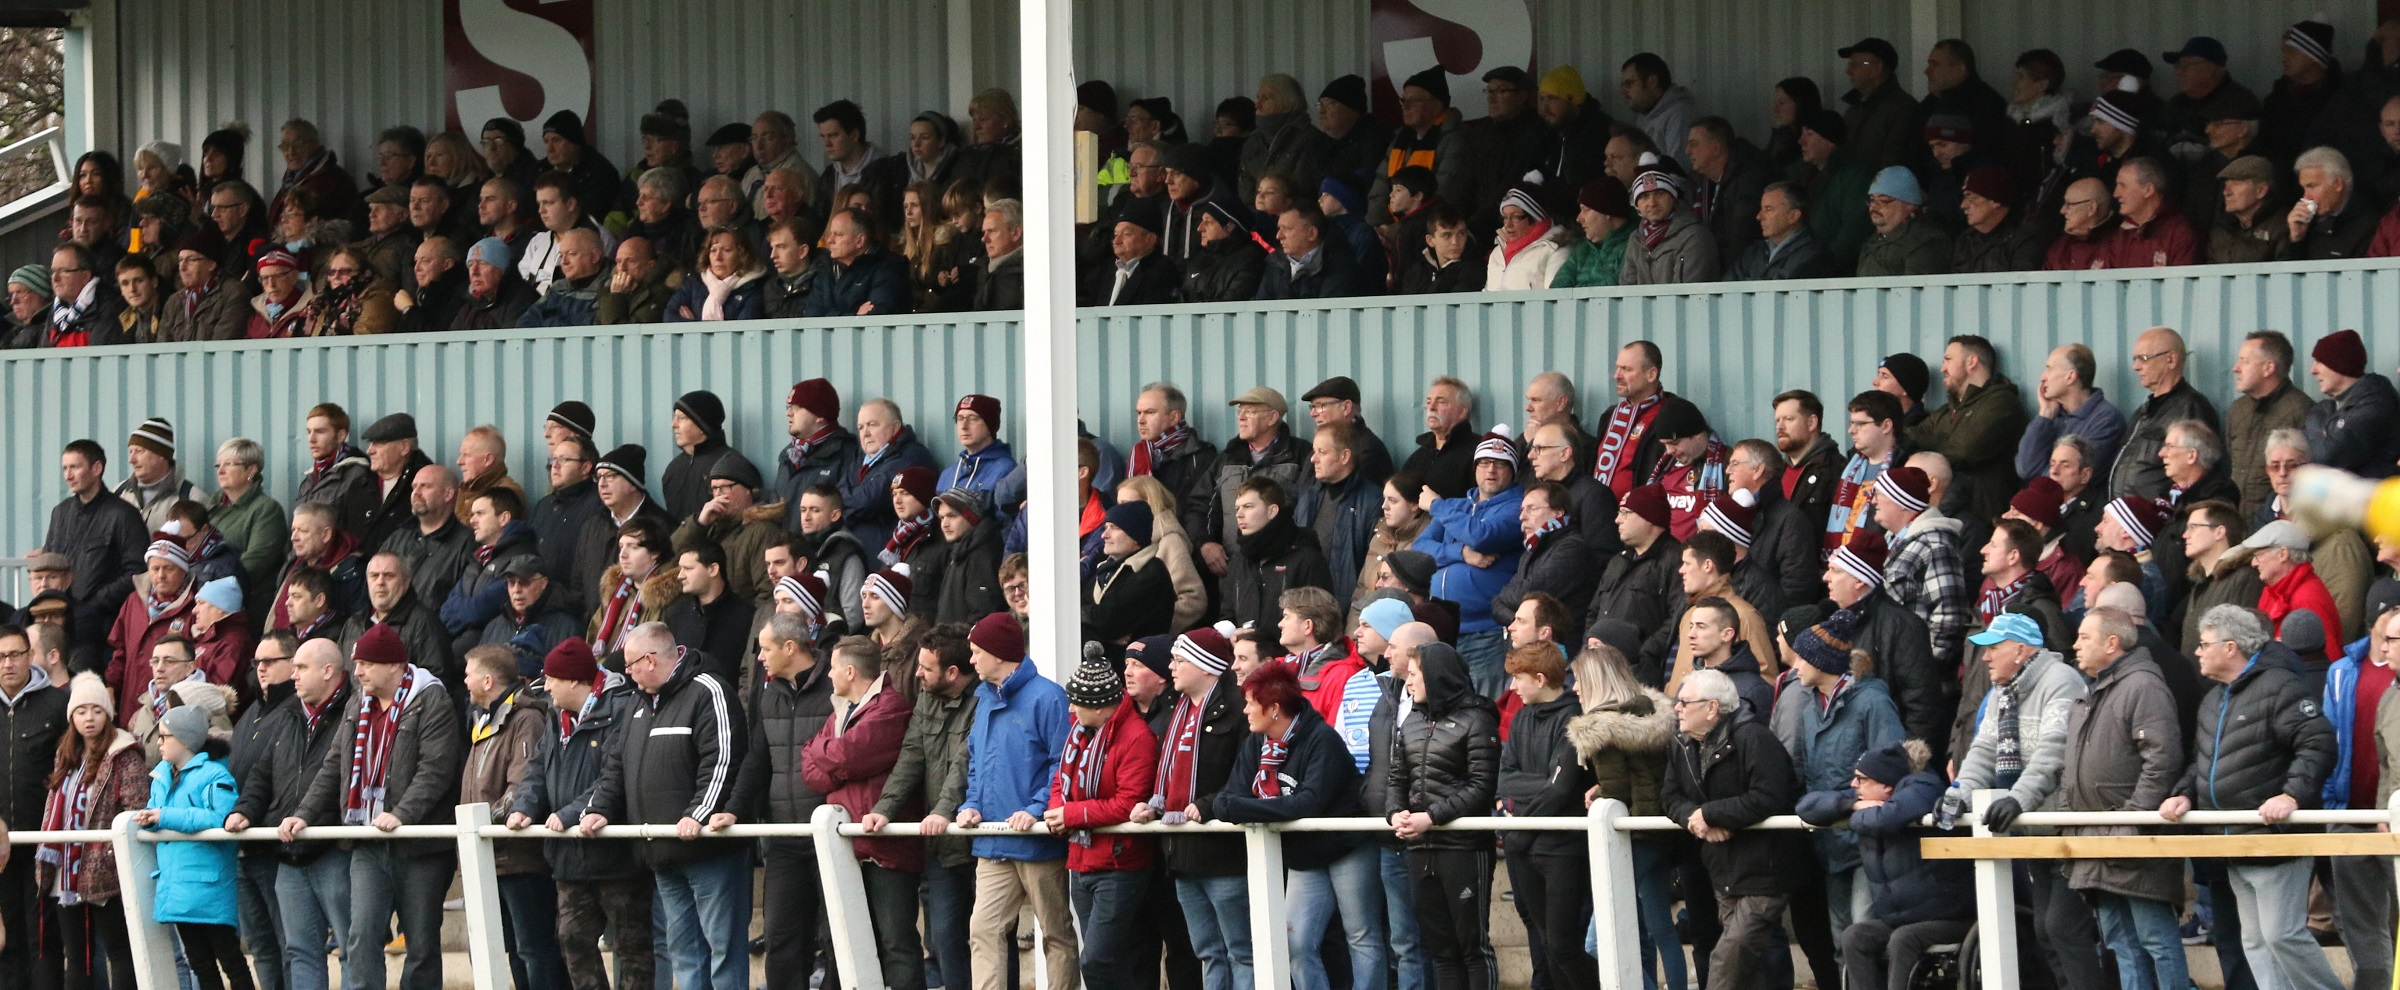 FA Vase quarter-final is a sell-out at Mariners Park